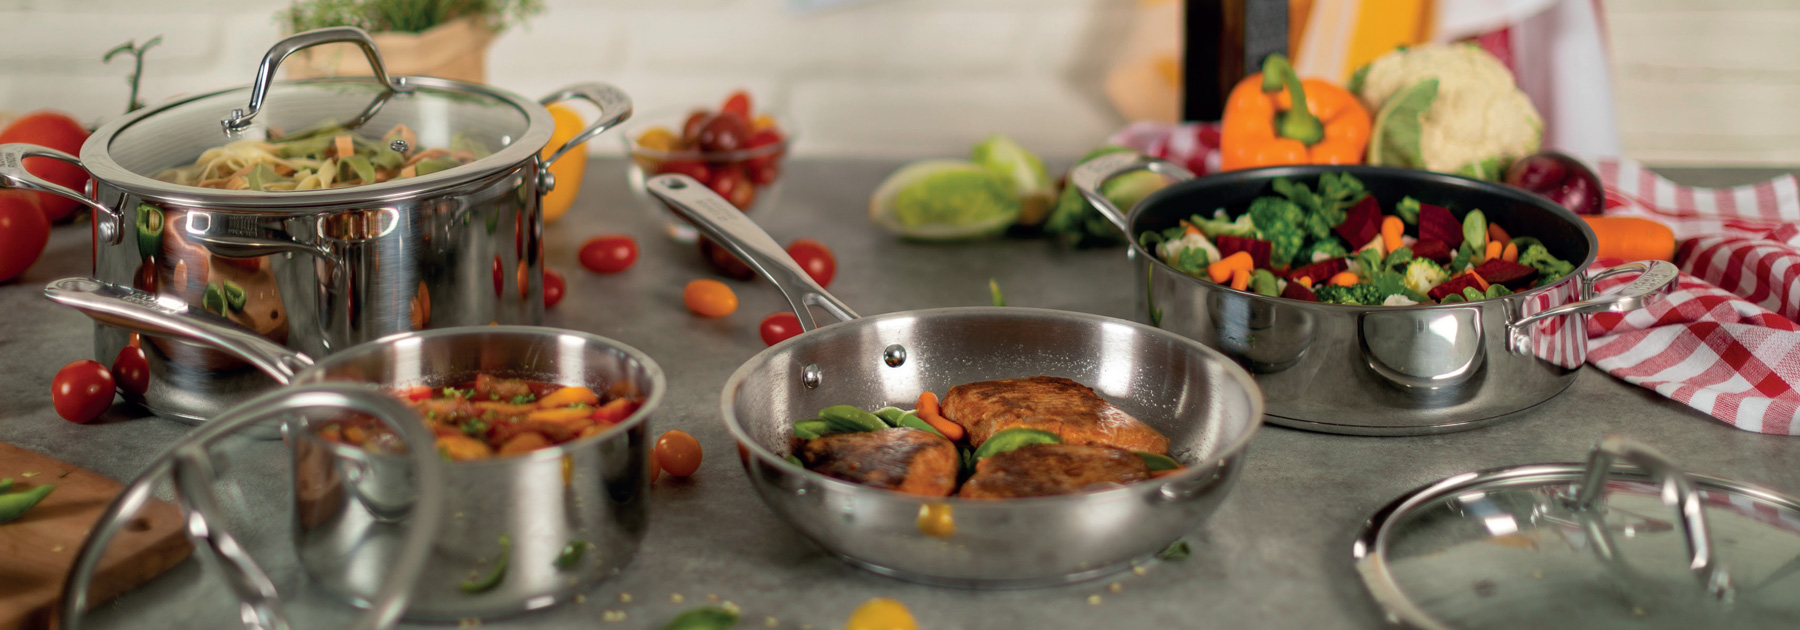 3 for 2, Cookware, Shop Now, Sale, New Lines